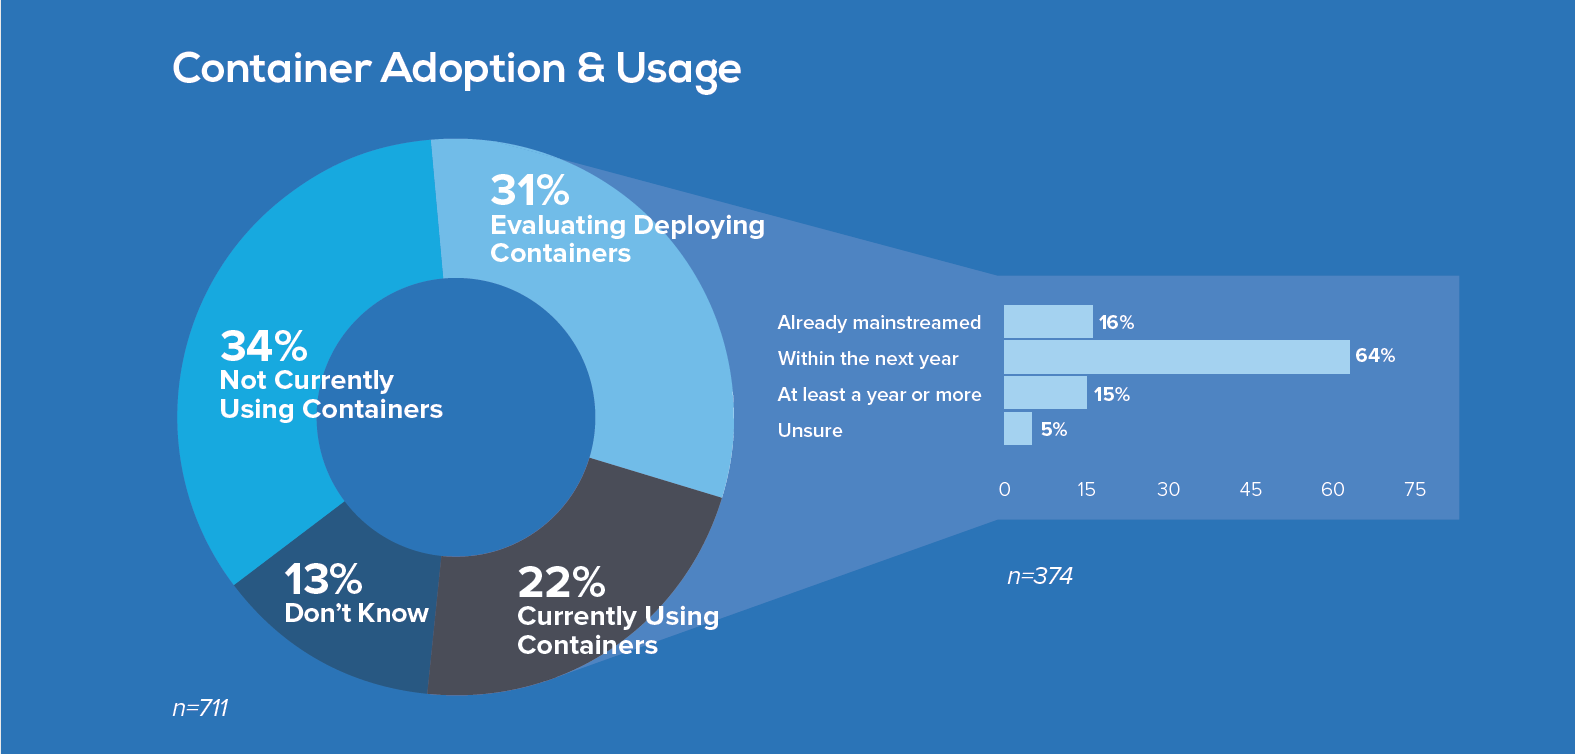 Container Adoption & Usage